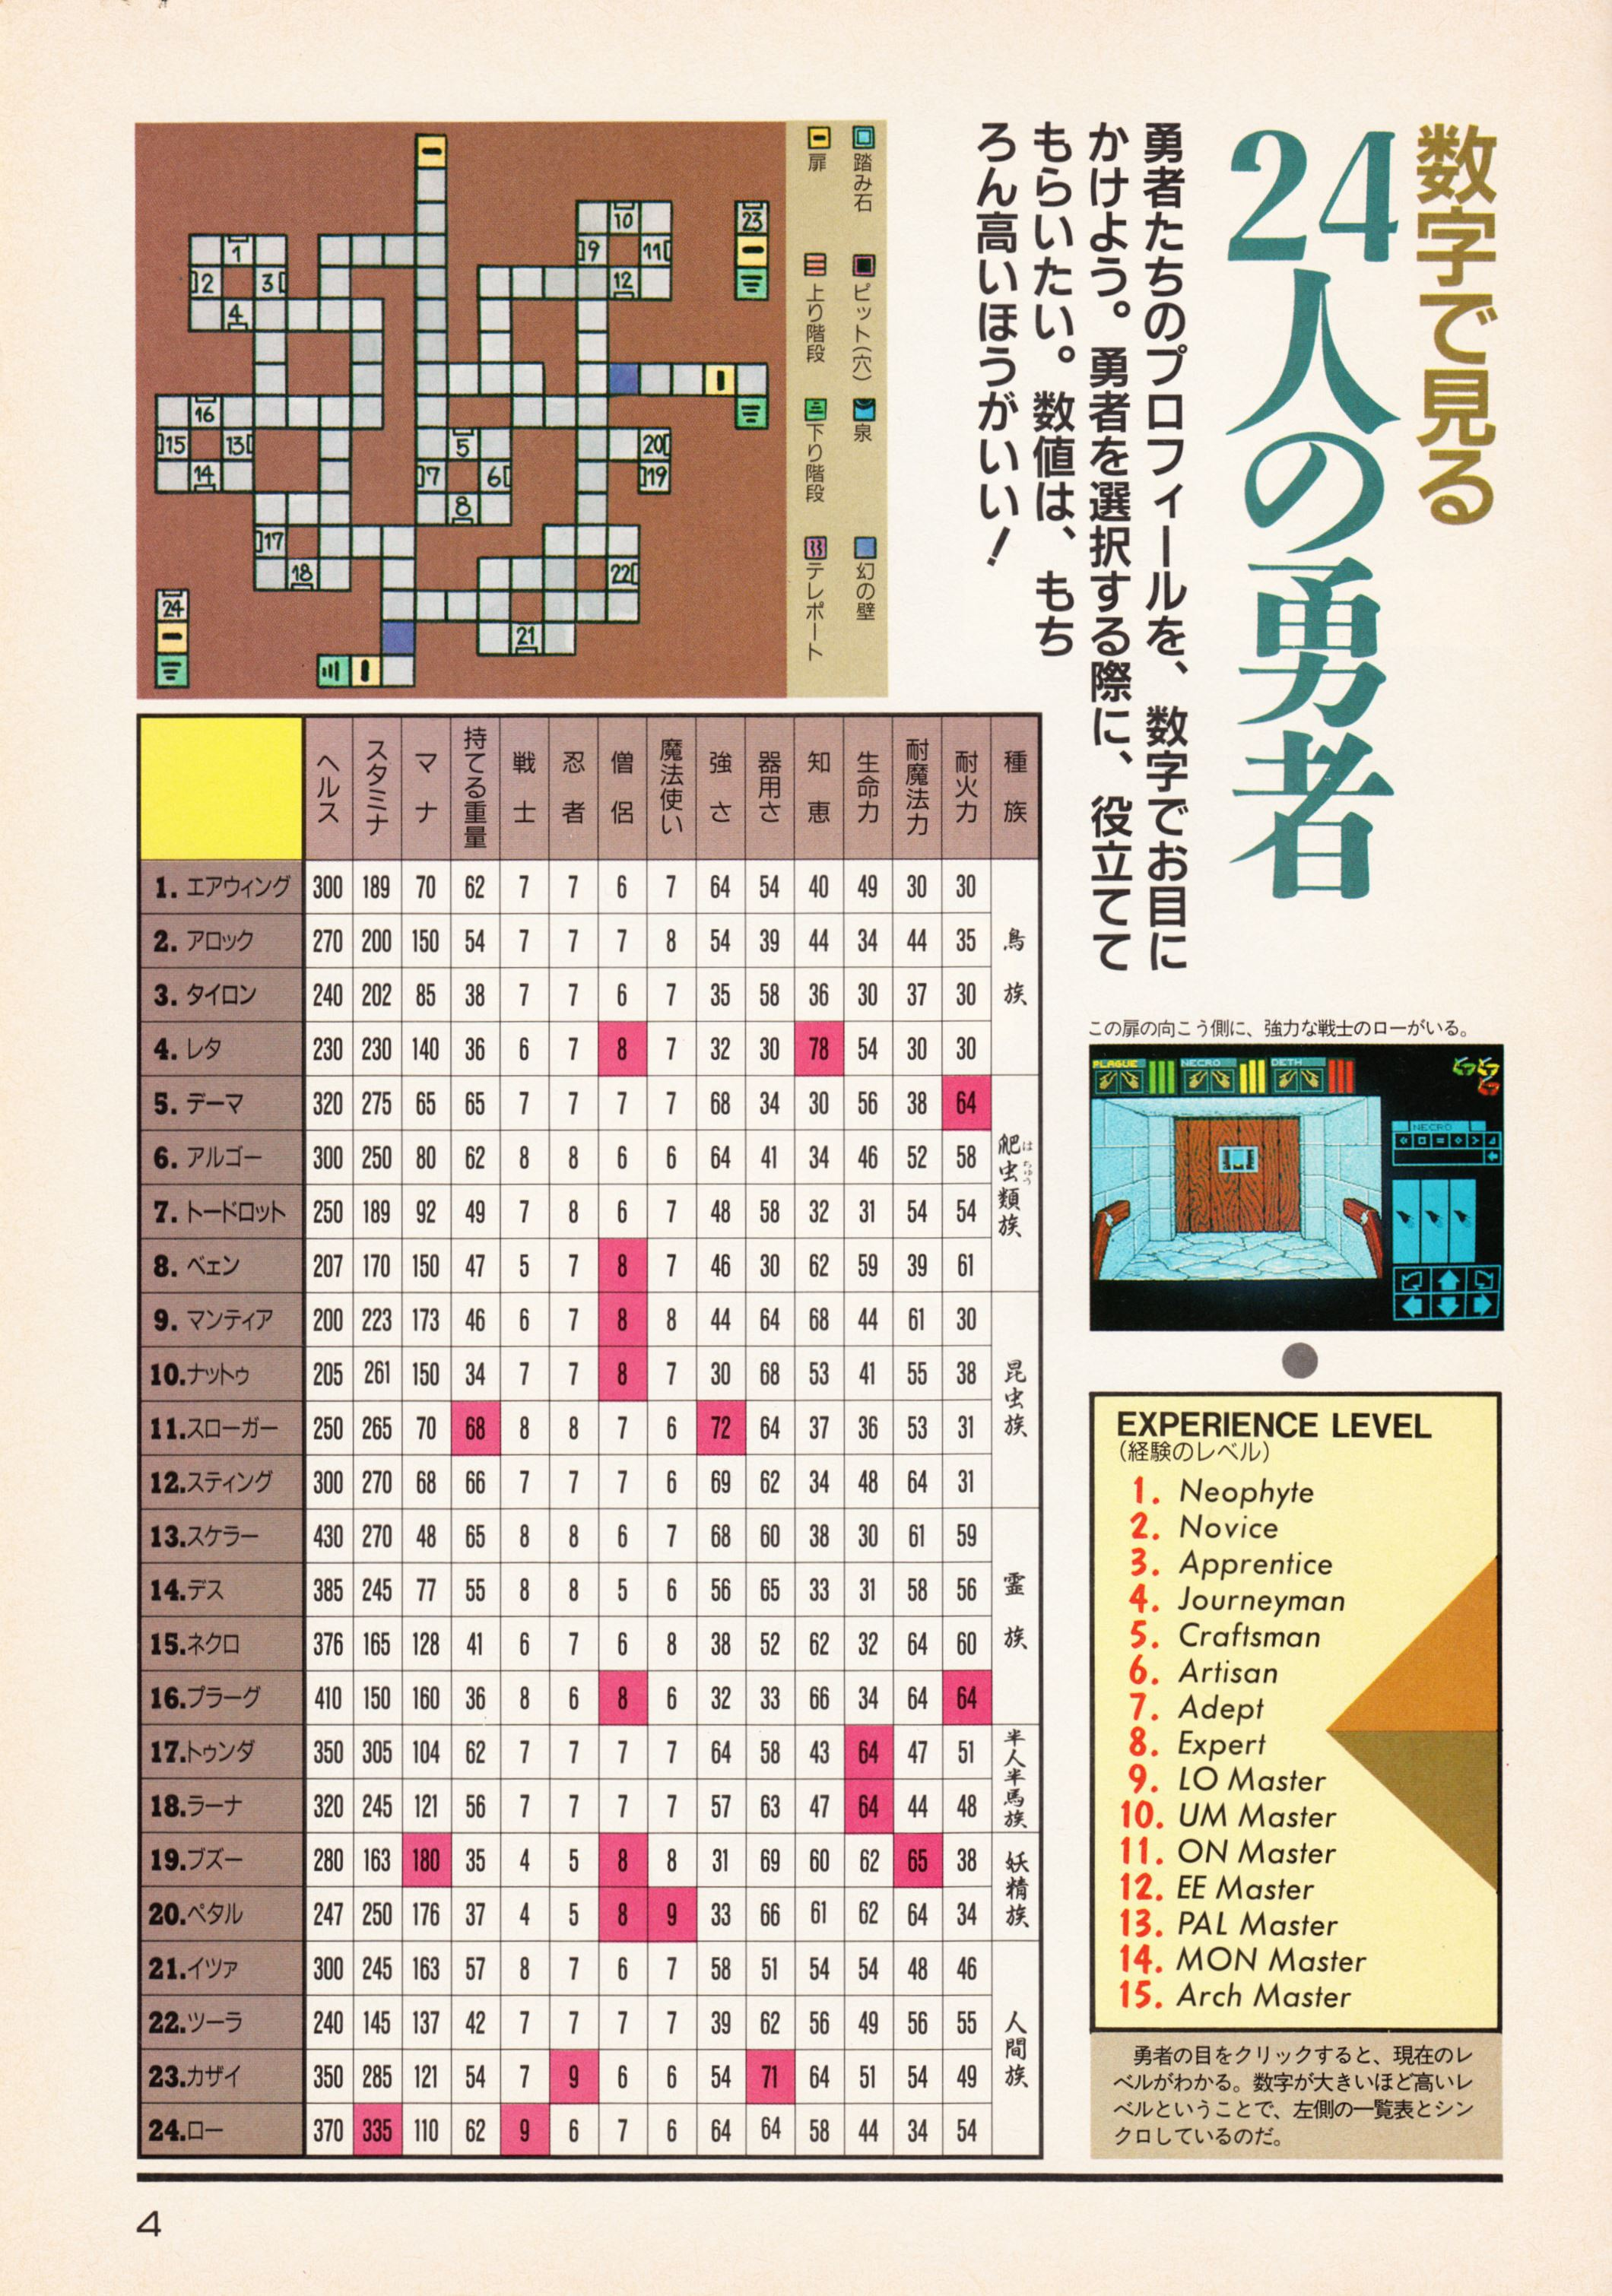 Supplement 1 - Chaos Strikes Back Companion Guide Guide published in Japanese magazine 'Popcom', Vol 9 No 2 01 February 1991, Page 6